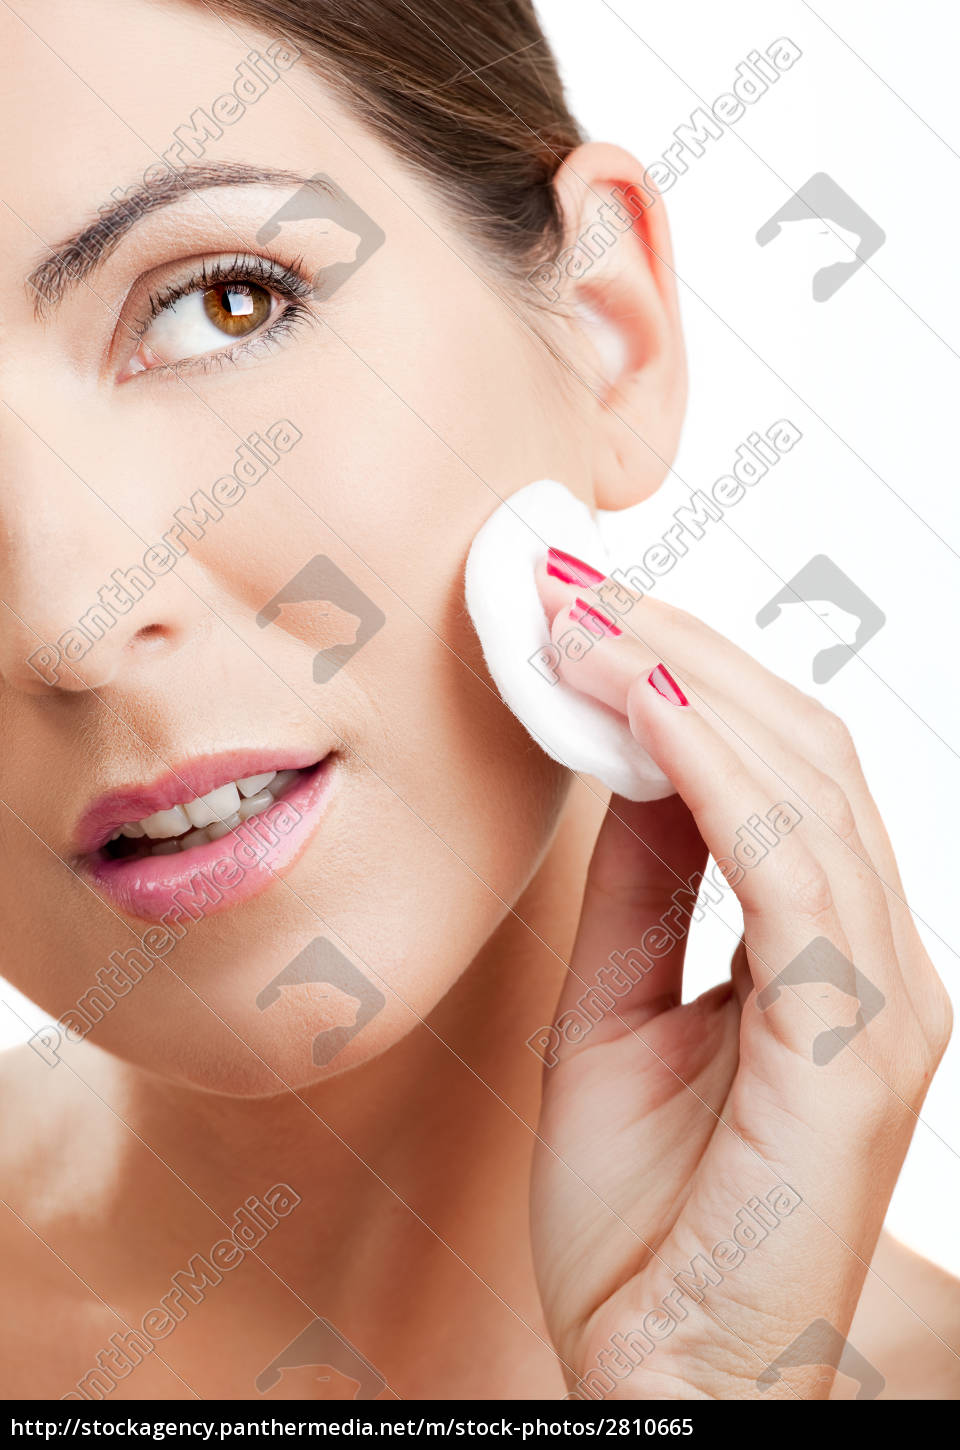 cleaning, the, face - 2810665